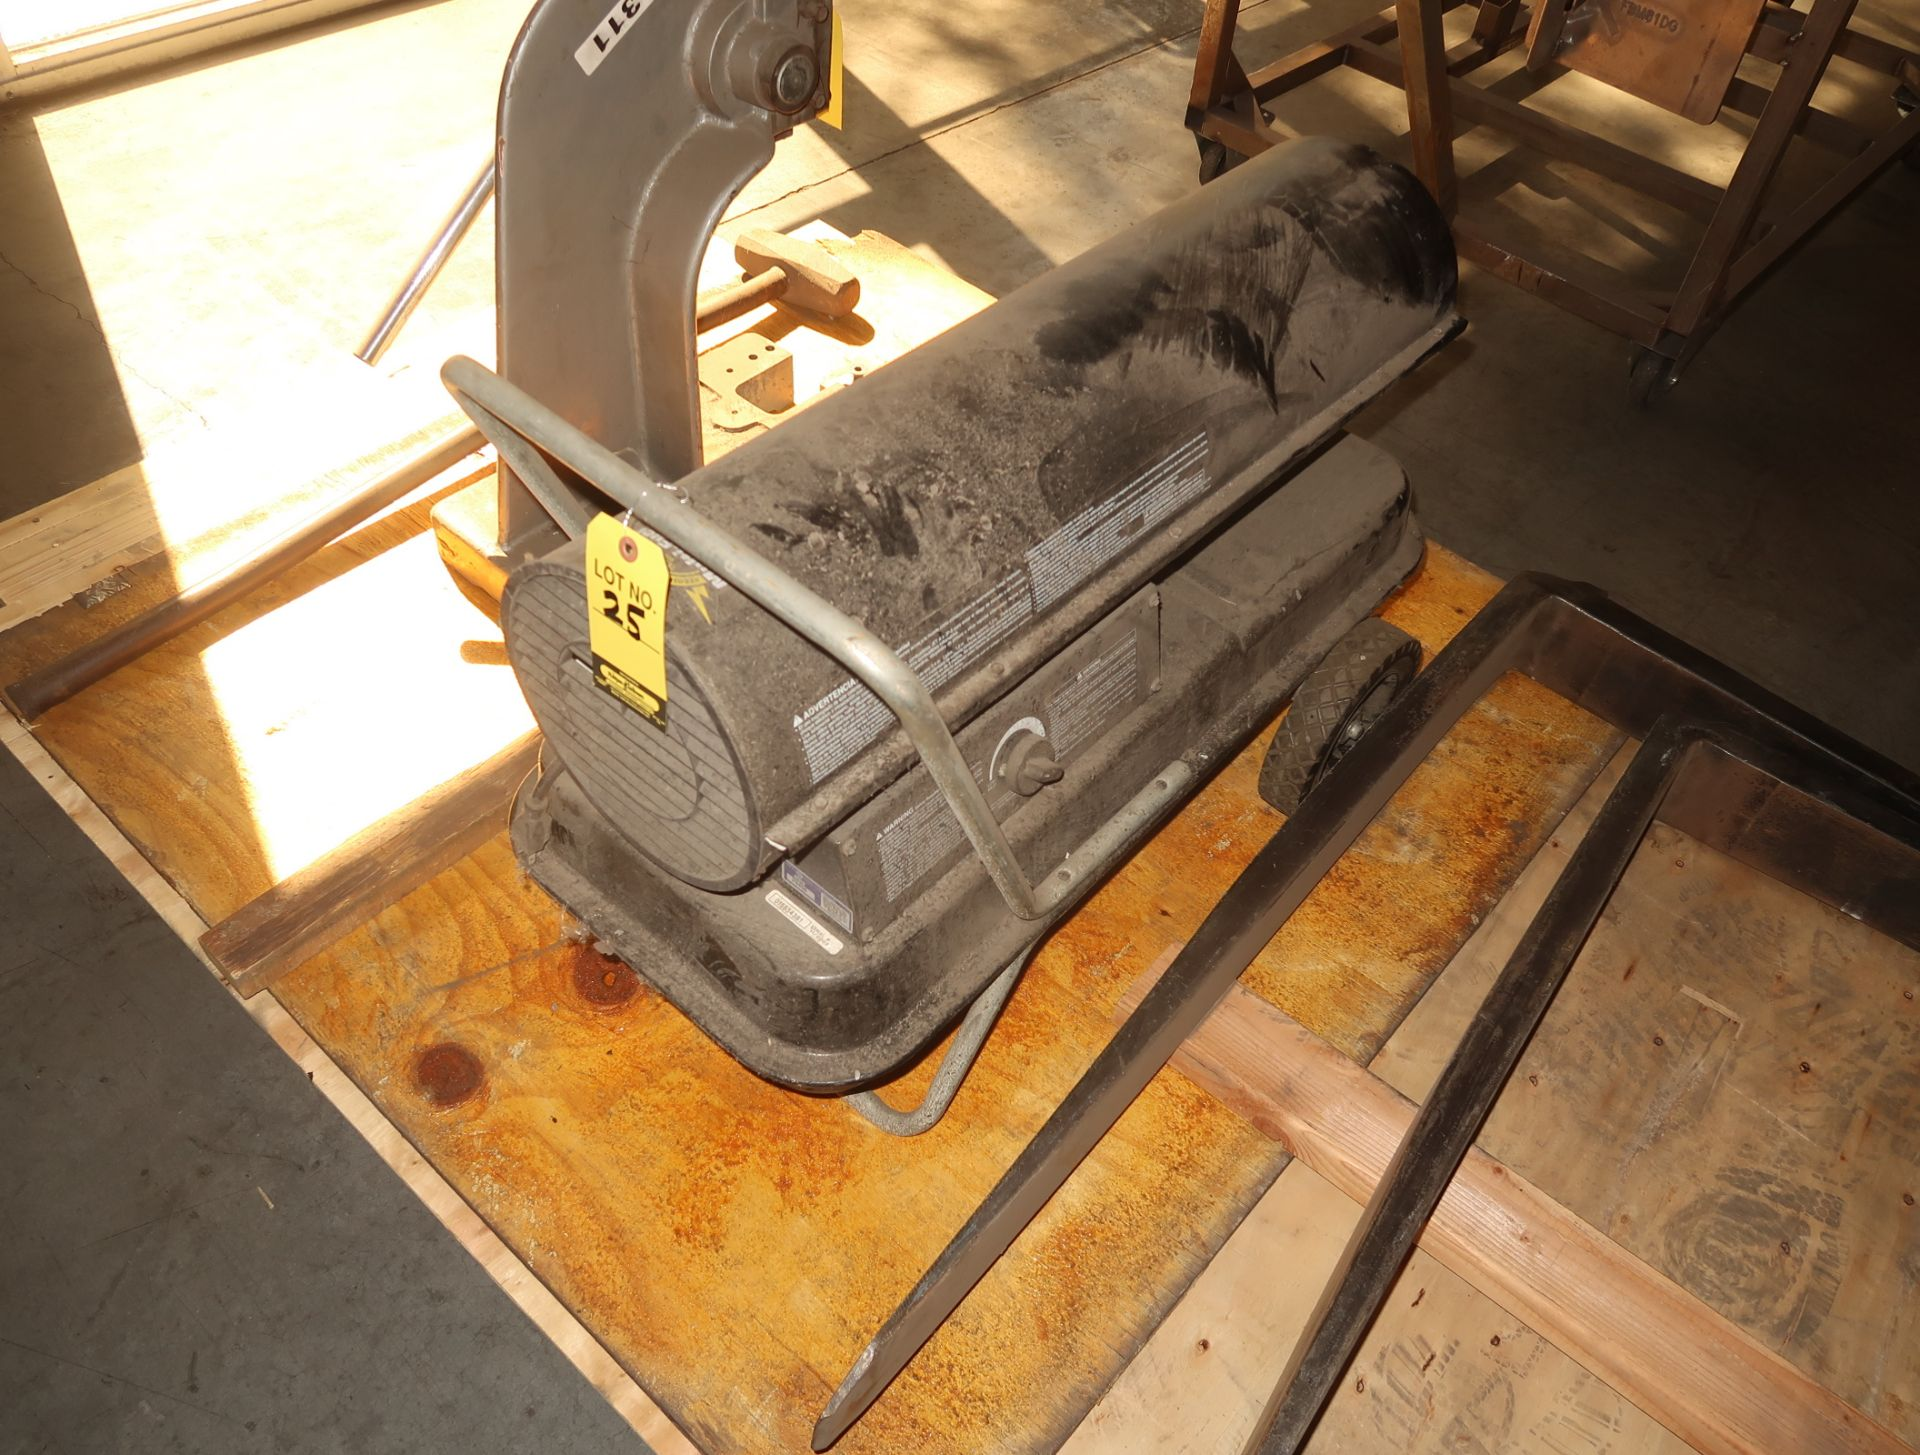 Lot 25 - REDDY HEATER 115,000BTV FUEL SPACEHEATER MDL. 29456